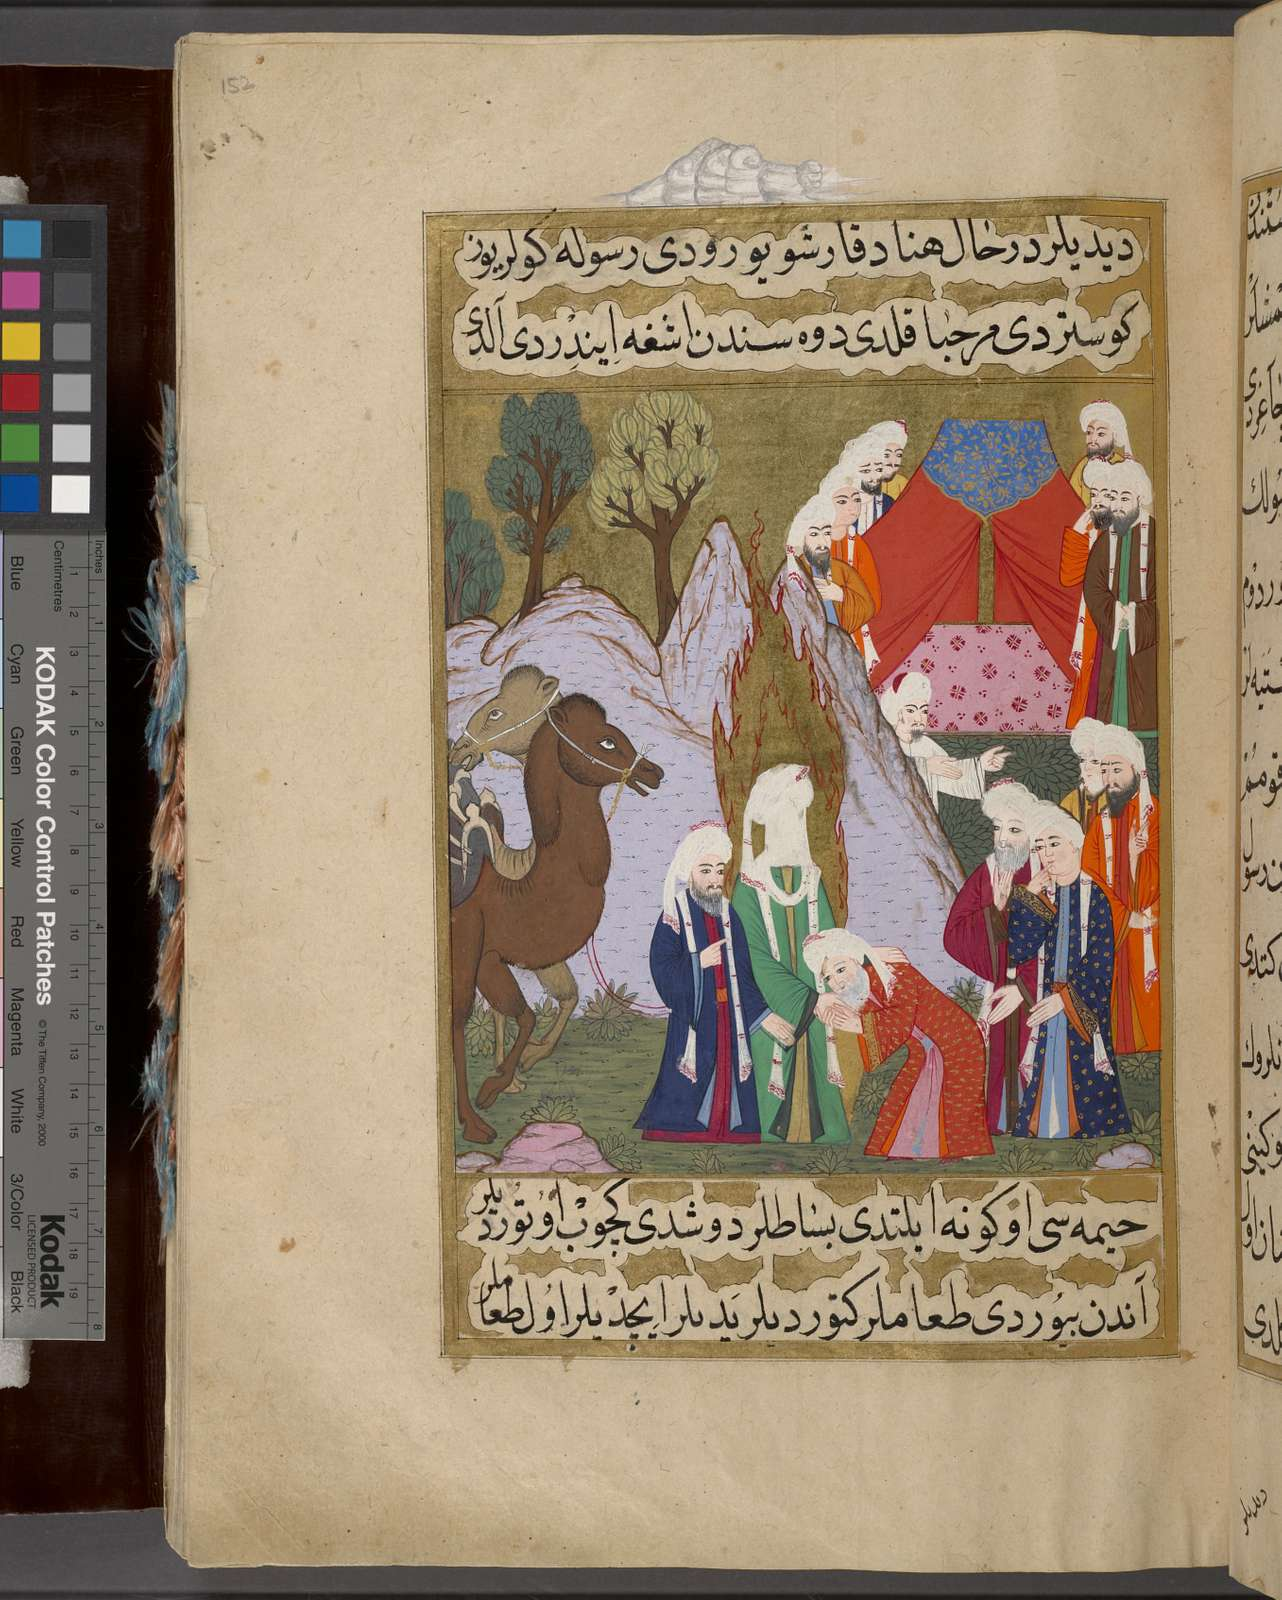 Hannâd ibn 'Umar kisses the hand of Muhammad, pledging his aid and allegiance.